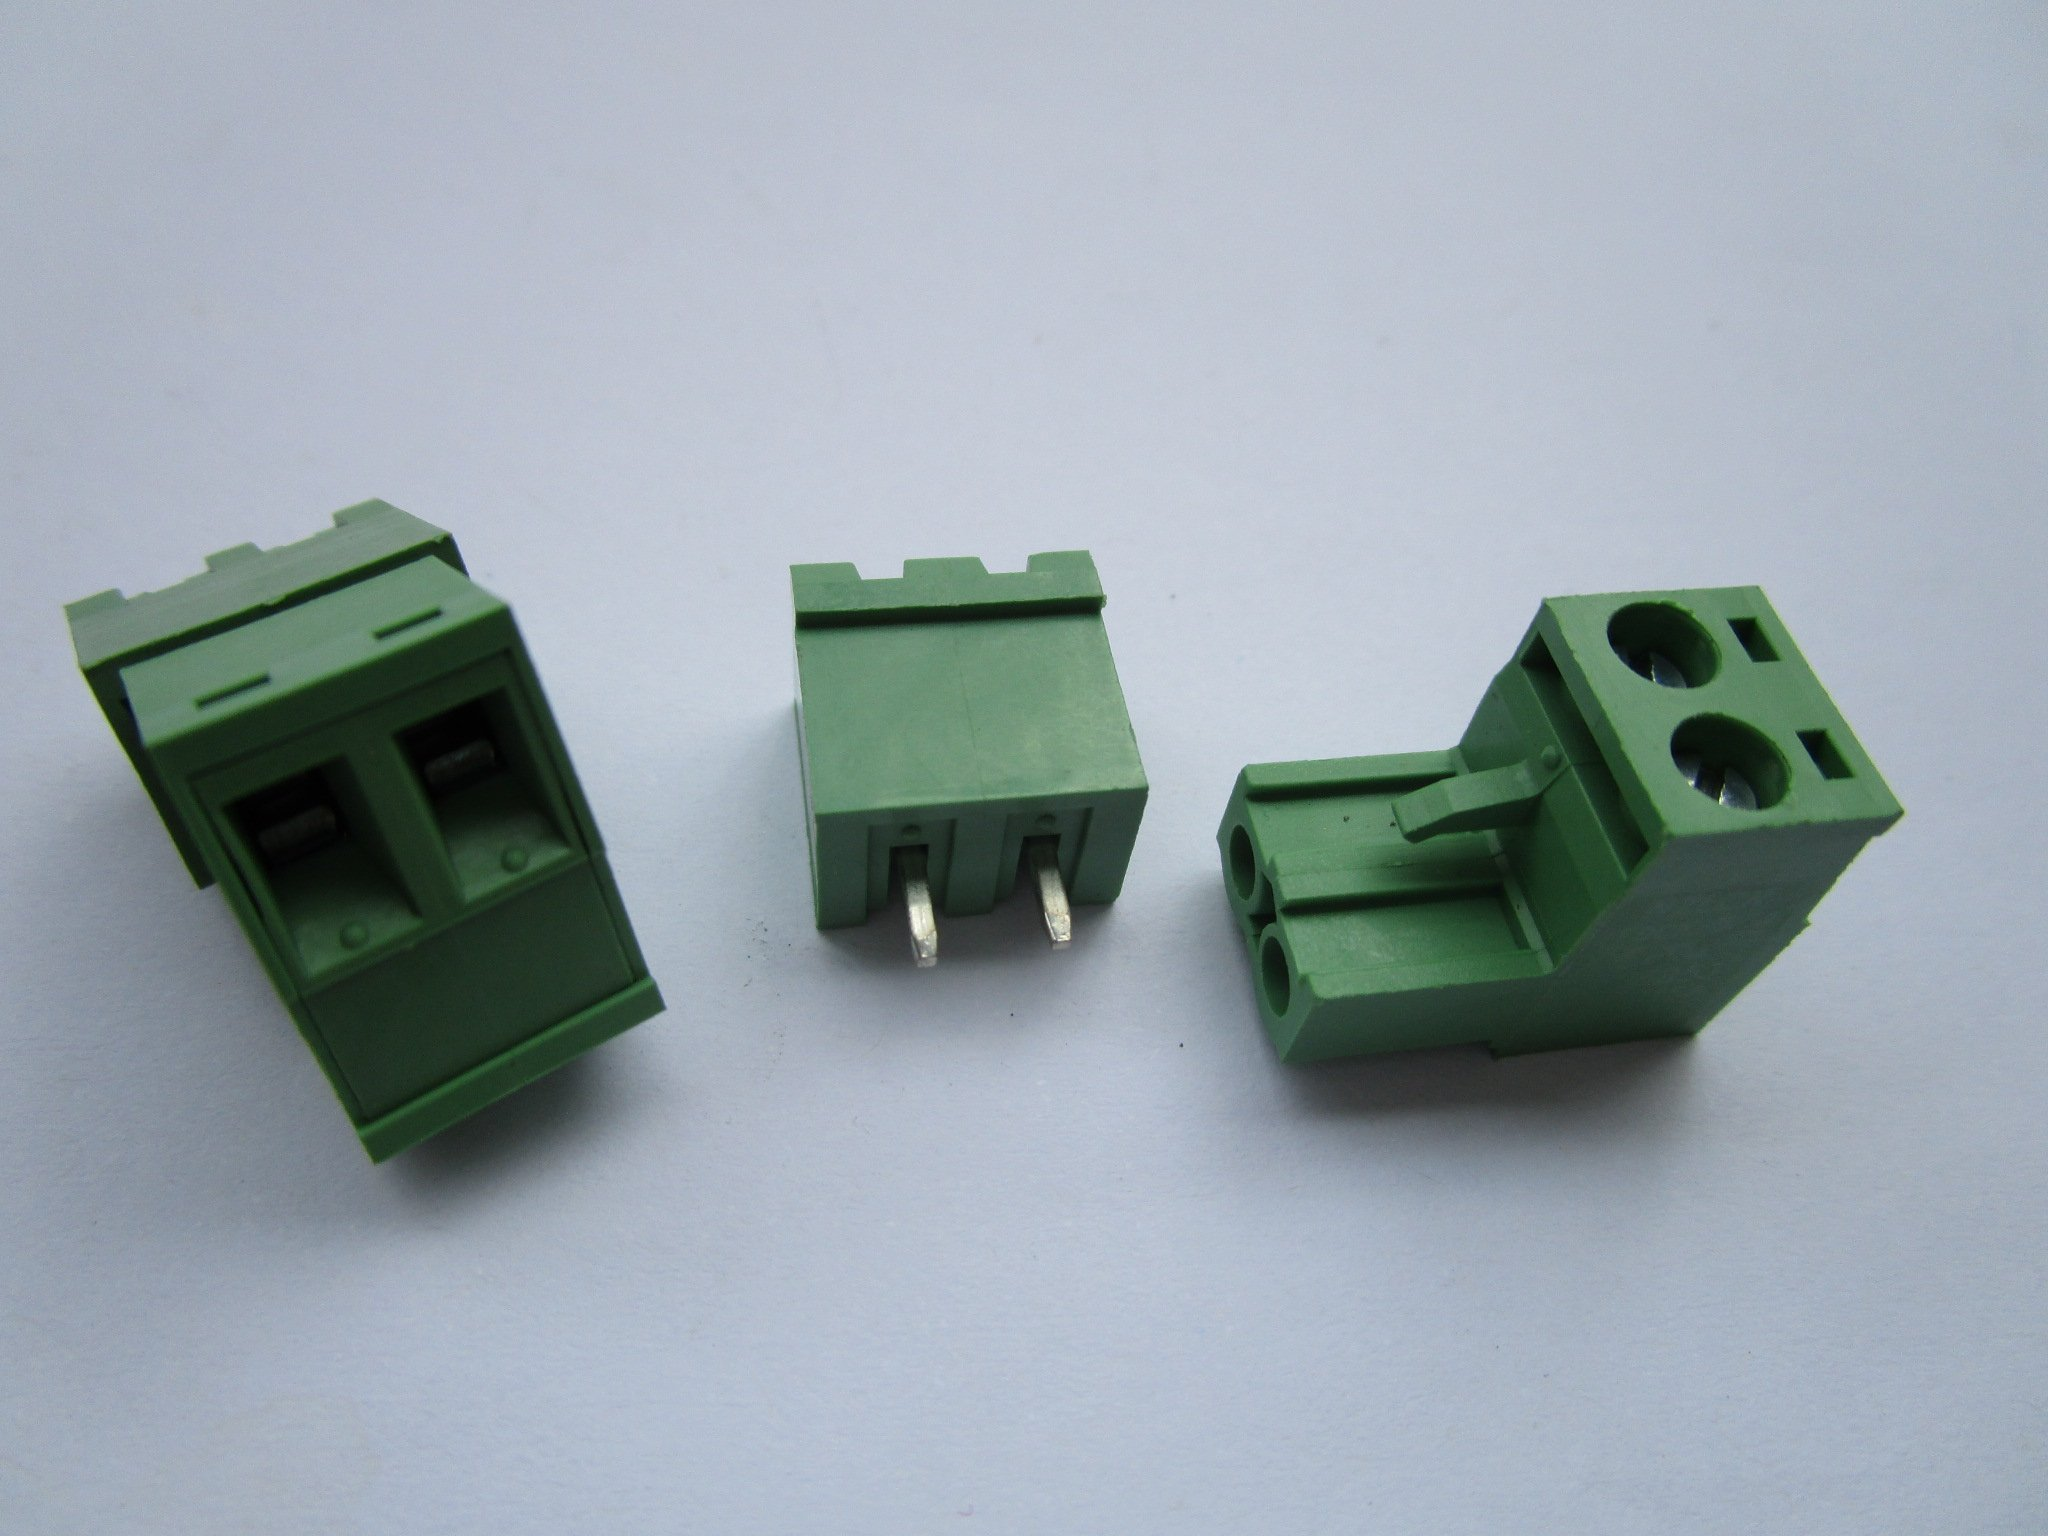 400 Pcs Close Straight 2 Pin/way Pitch 5.08mm Screw Terminal Block Connector Green Color Pluggable Type with Straight Pin